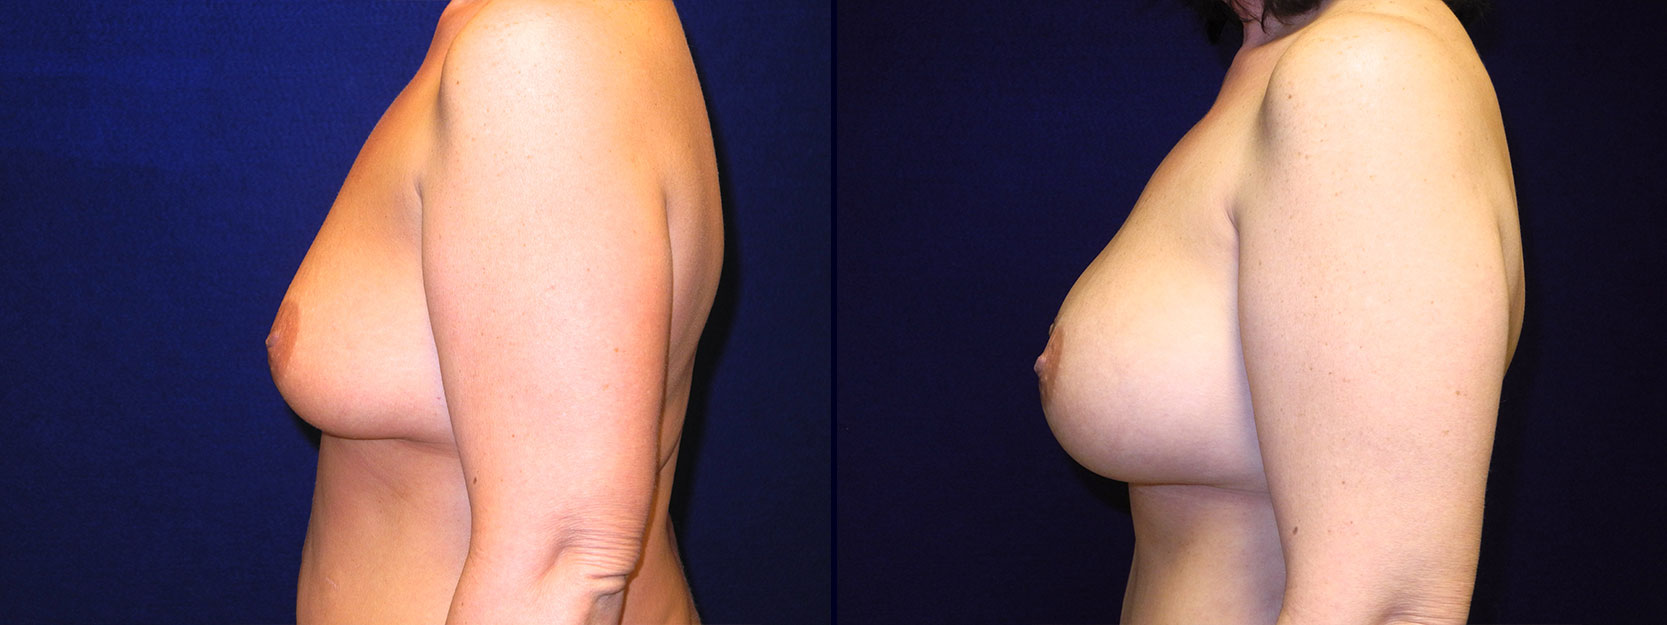 Left Profile View - Breast Augmentation After Weight Loss